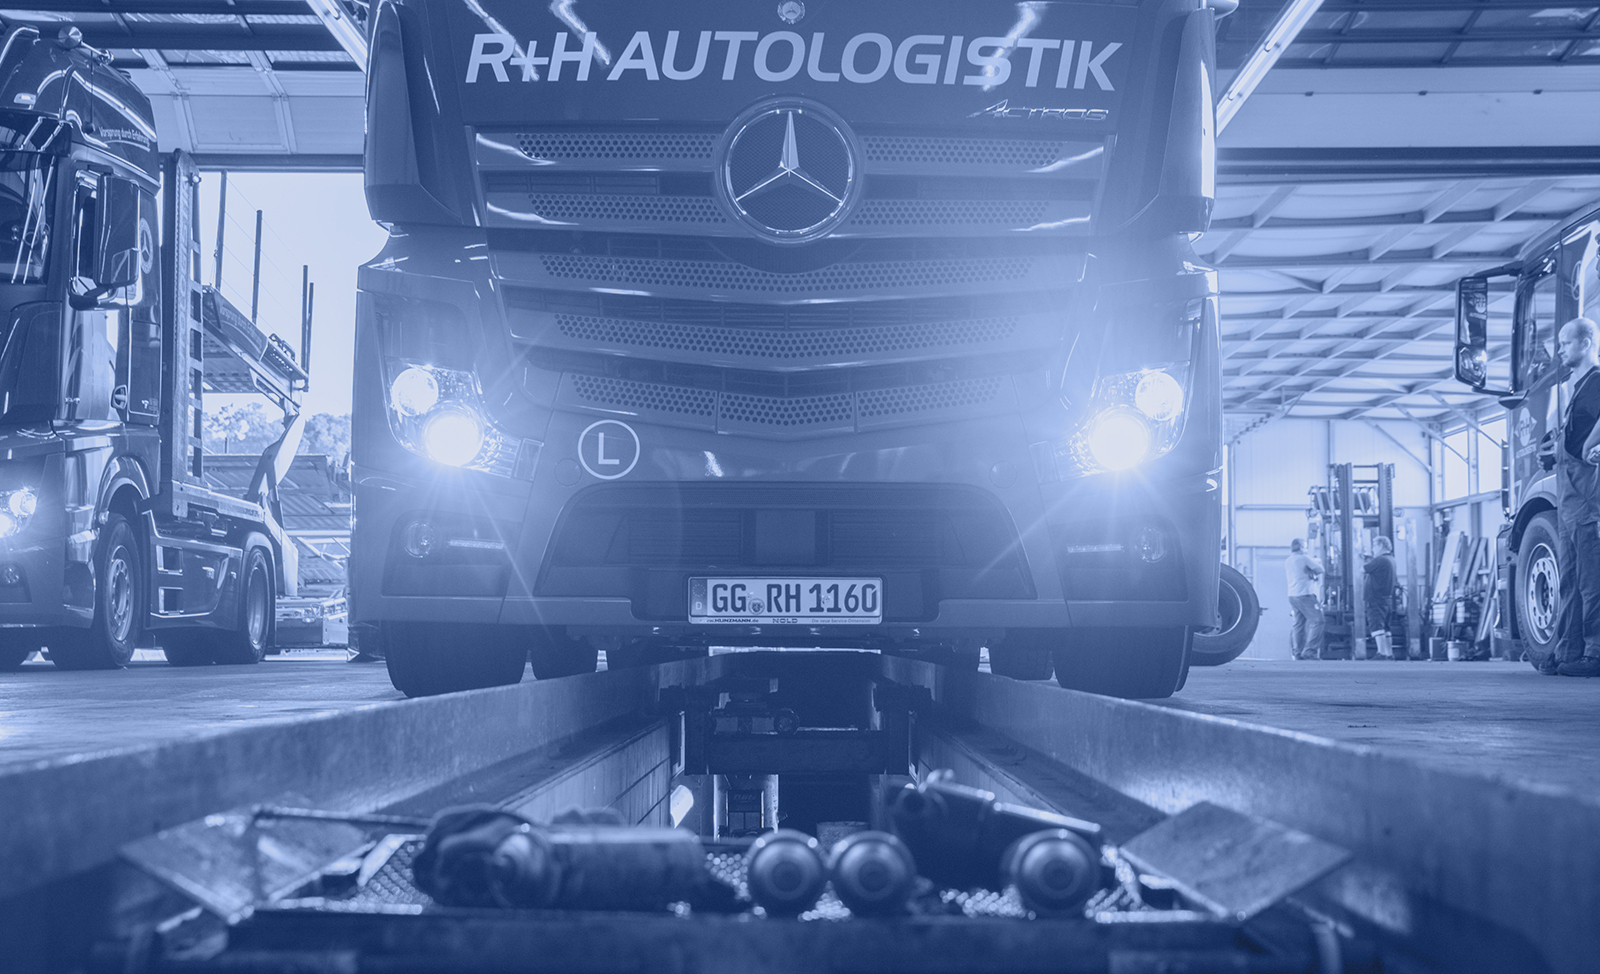 © R&H Autologistik GmbH & Co.KG